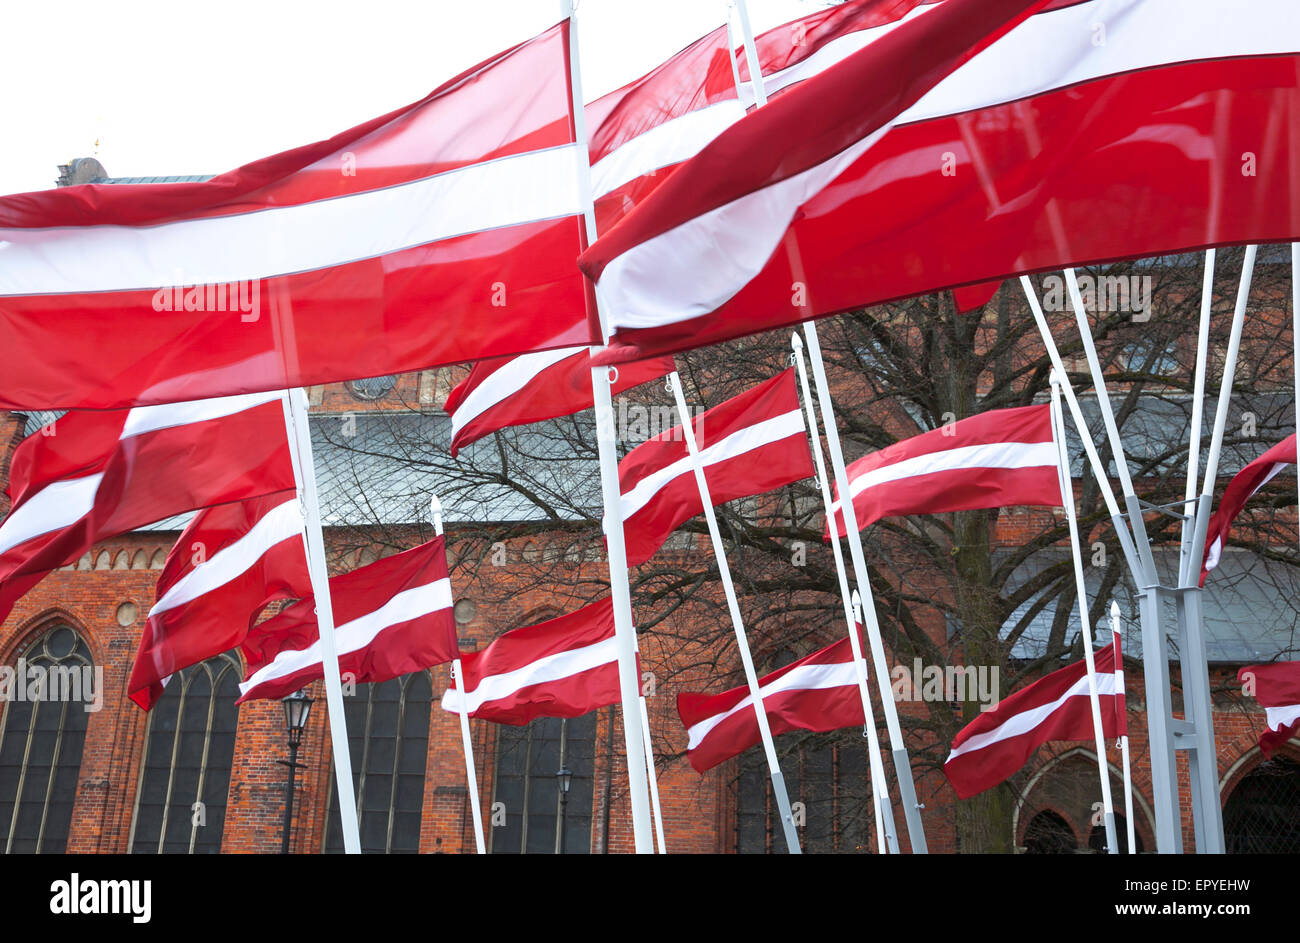 Latvian flags in front of the Riga Cathedral, Riga, Latvia Stock Photo